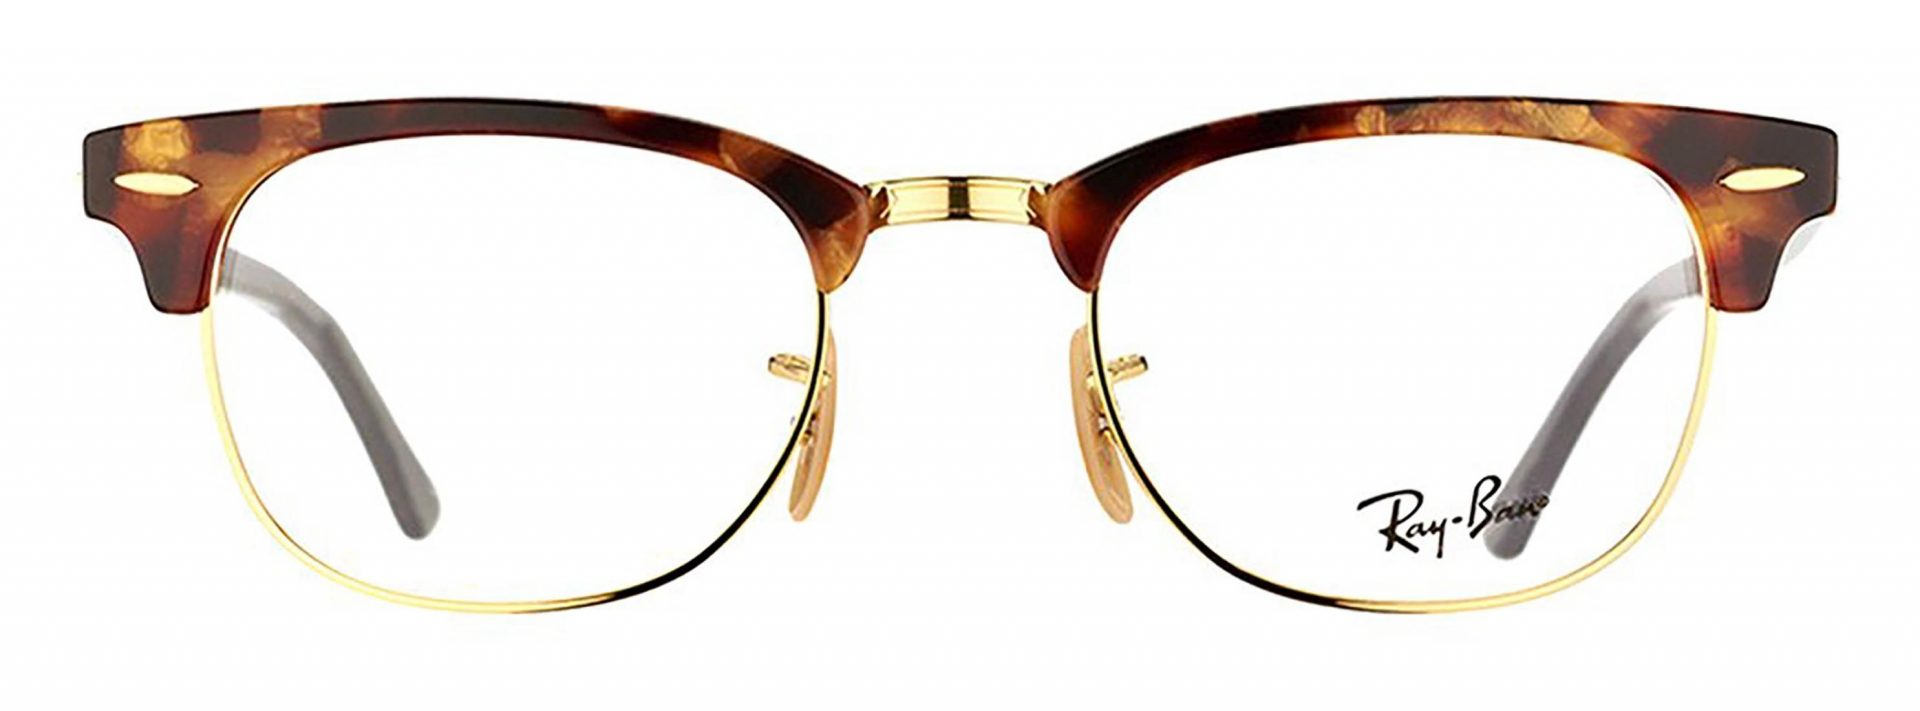 Ray-Ban spectacles 5154 5494 1 2970x1100